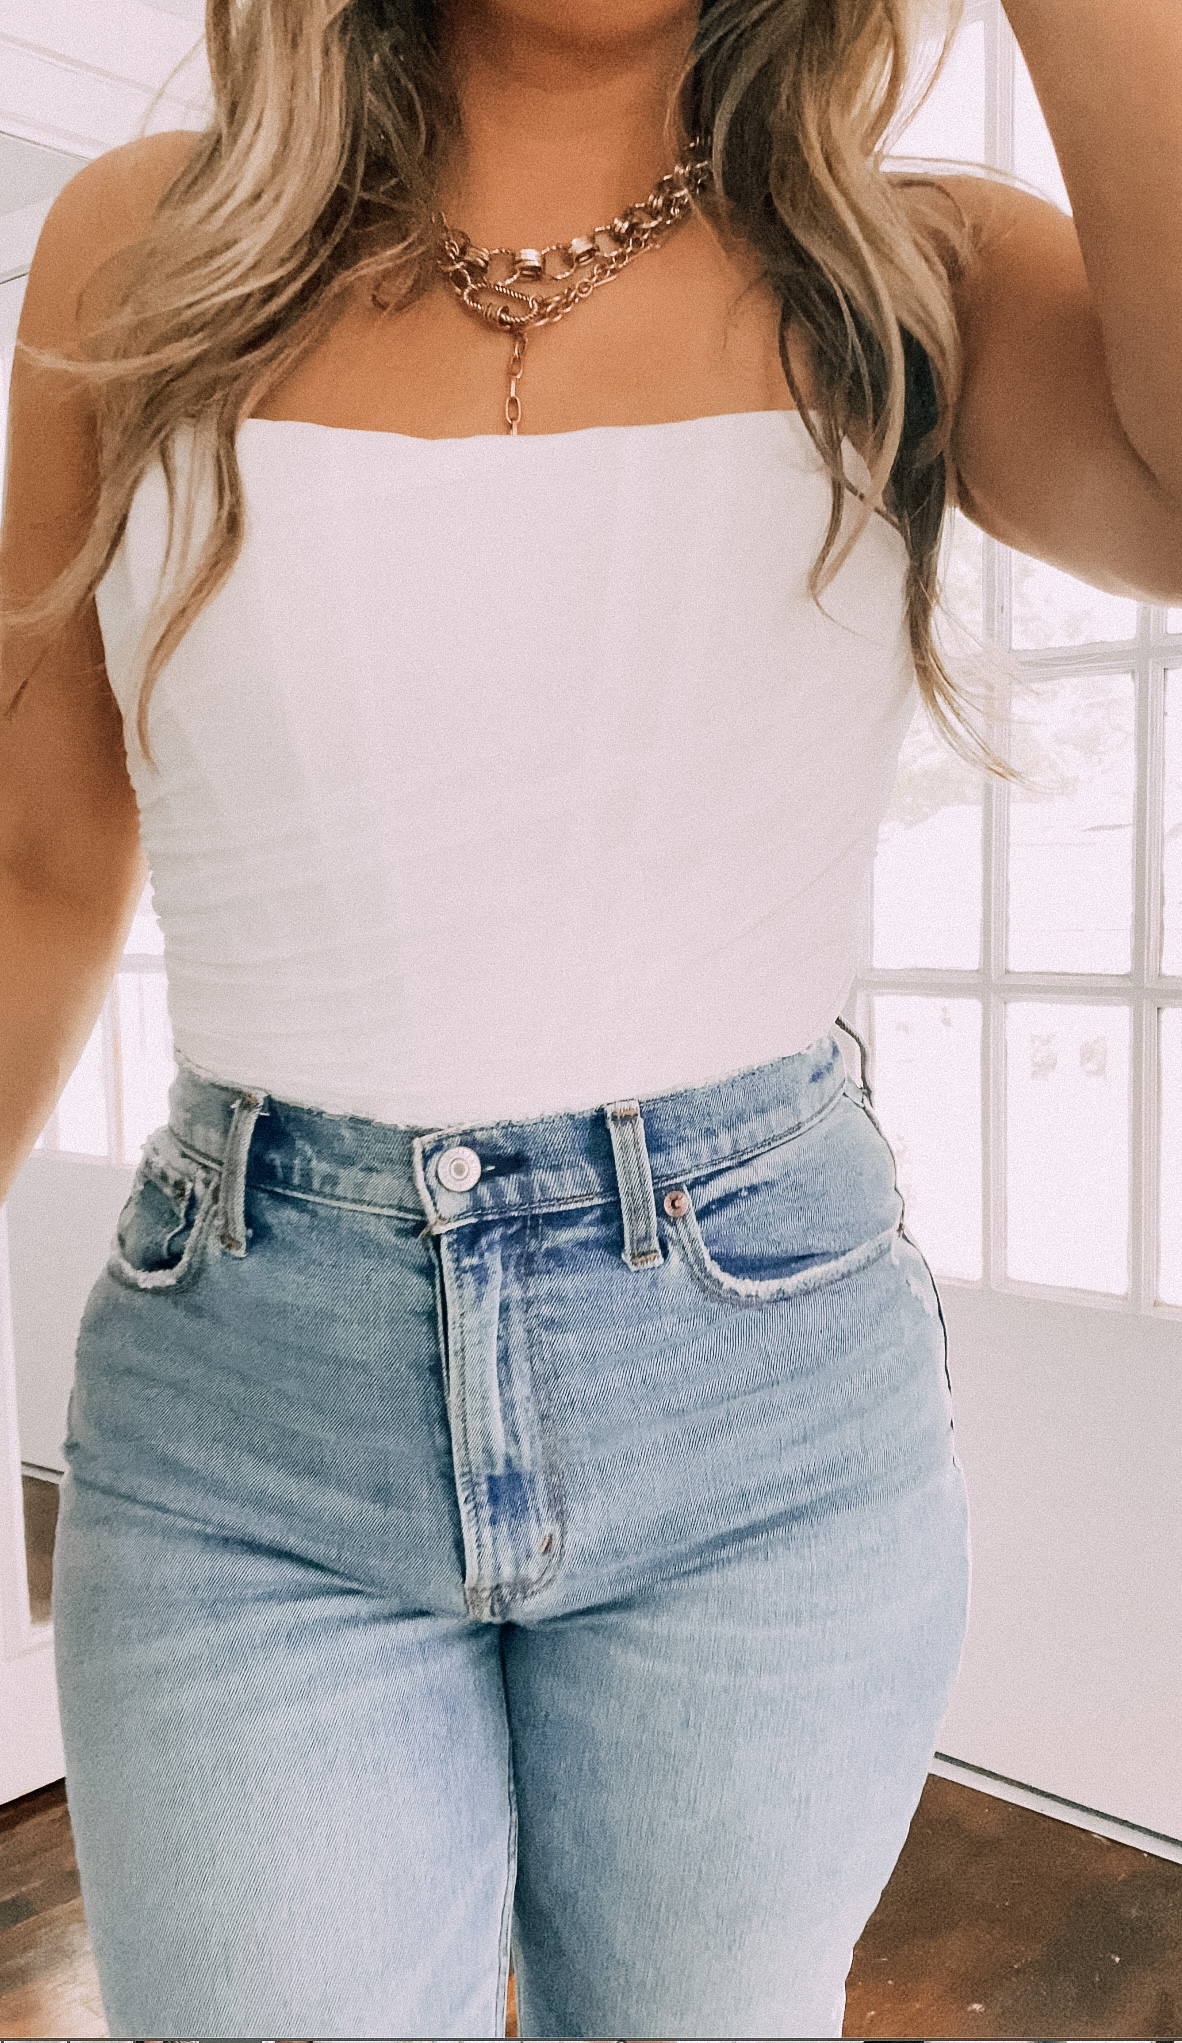 Amazon corset and jeans date night outfit